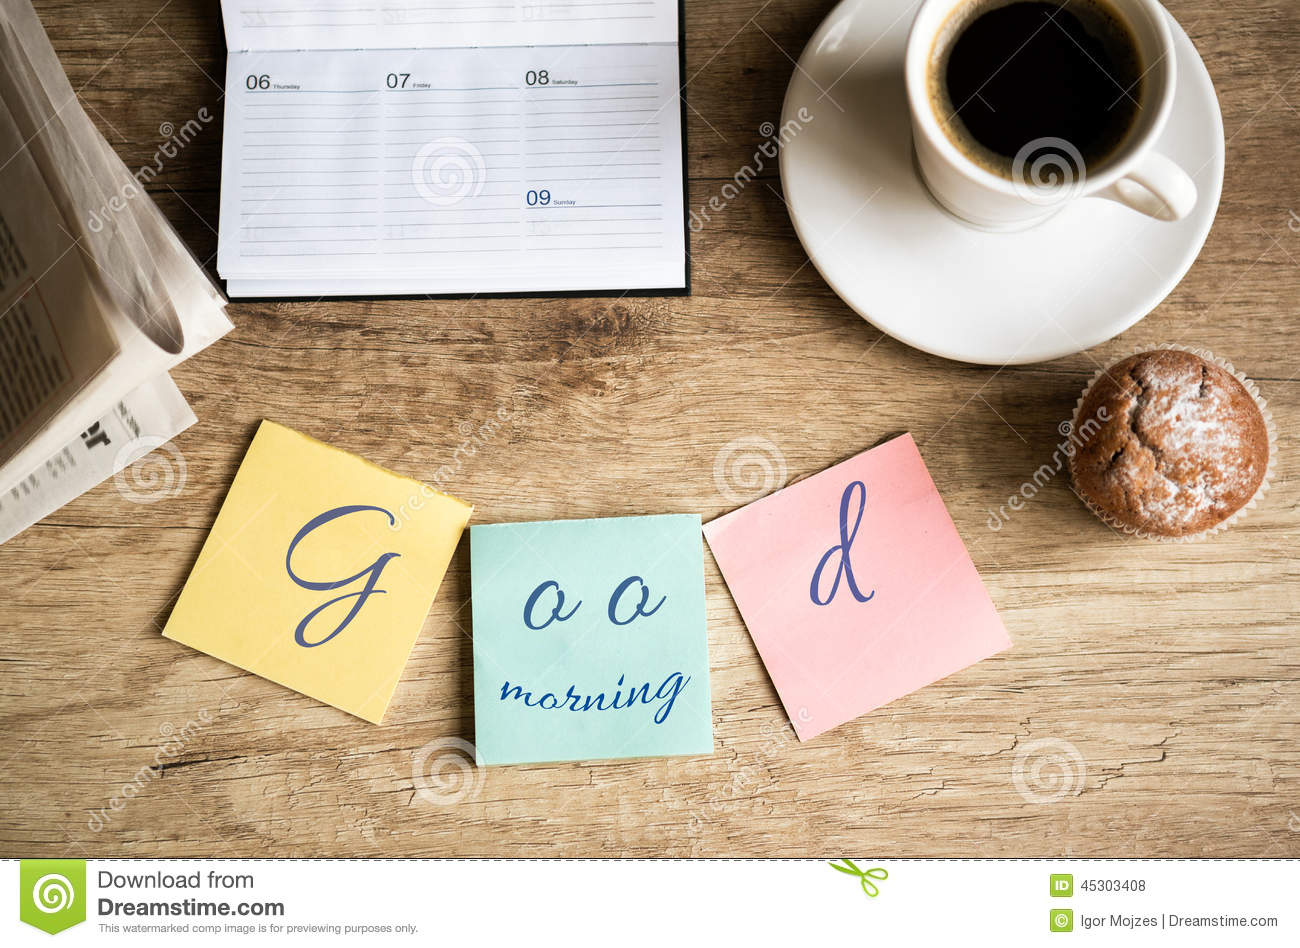 Good Morning On Work Stock Photo - Image: 45303408